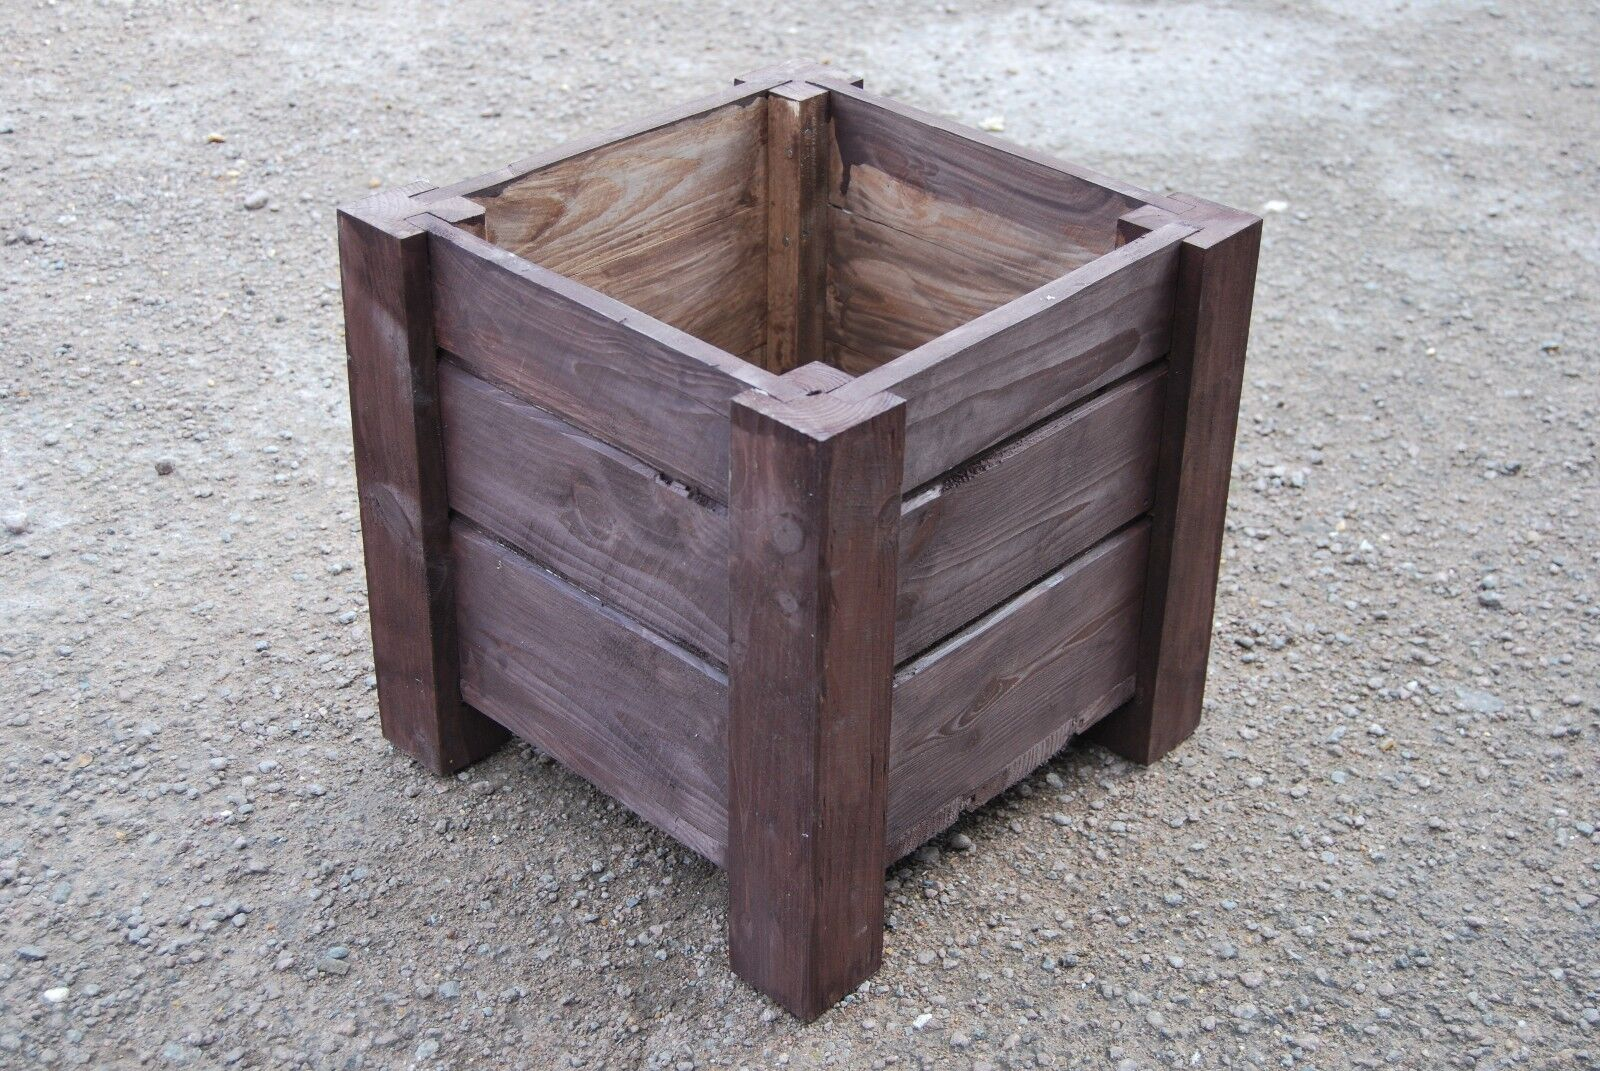 Large Square Wooden Pot 44 x 44 x 40 cm of Solid Wood Spruce in Ebony Farbe